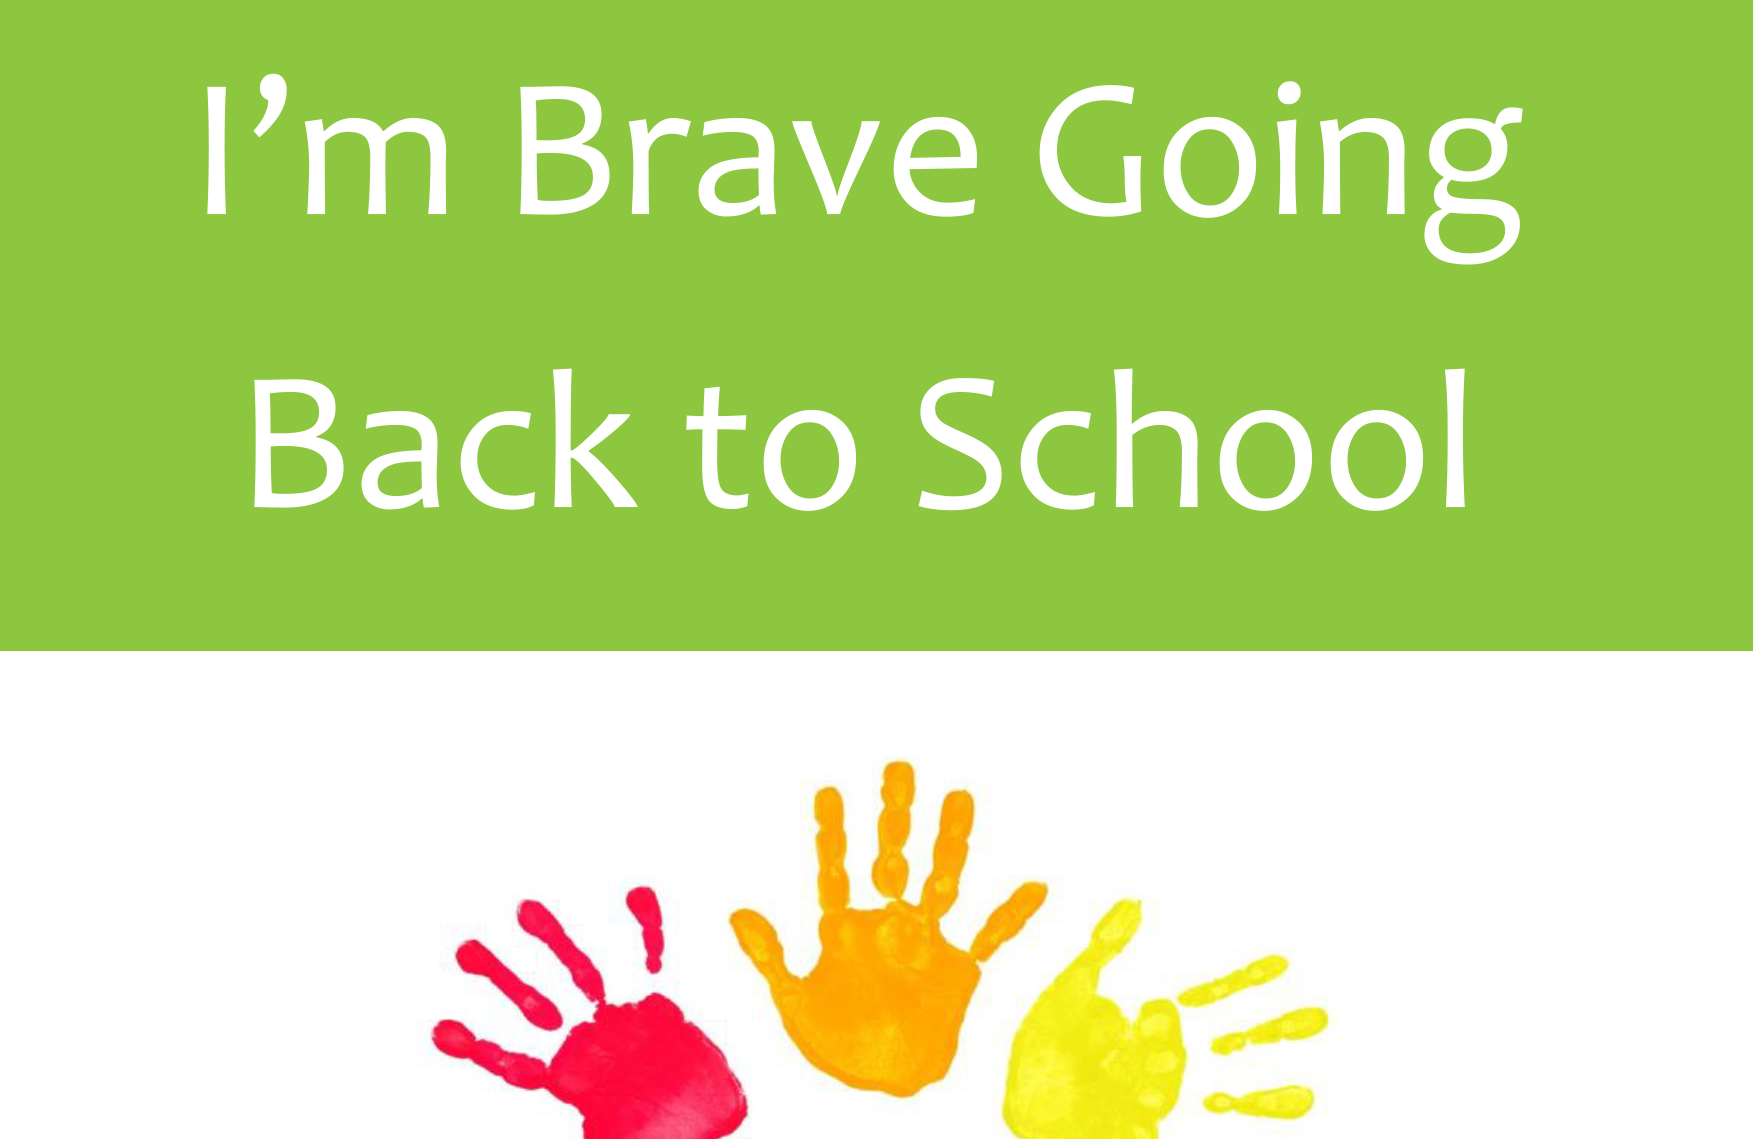 I'm Brave going Back to School (younger children)